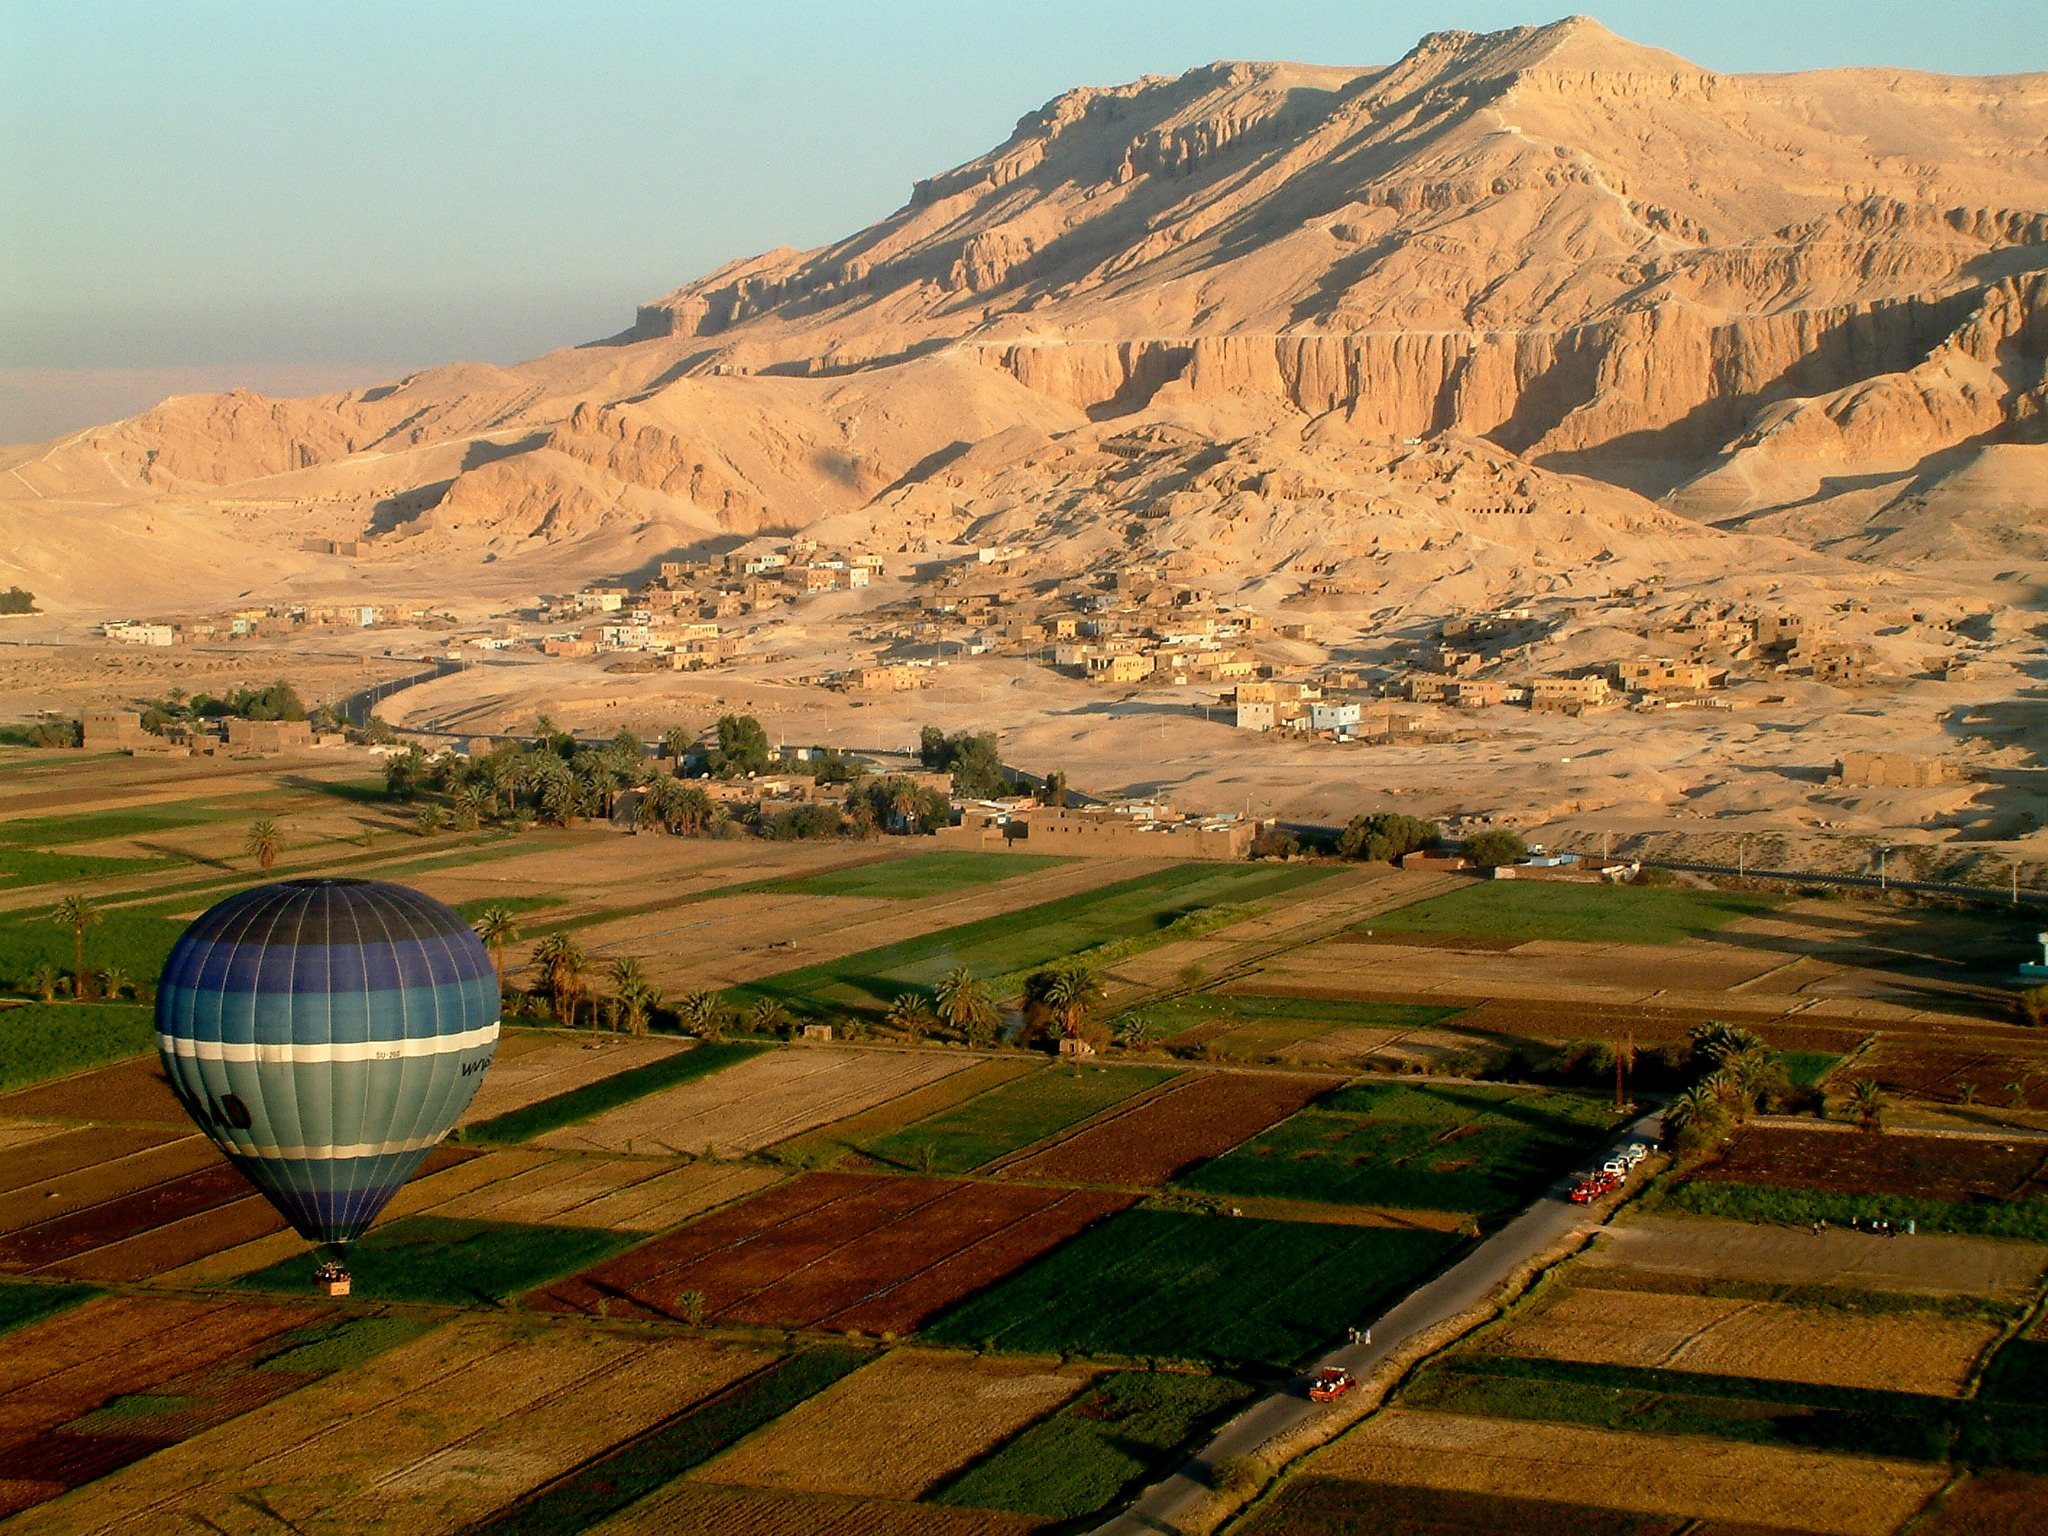 Balloon ride to the Valley of the Kings